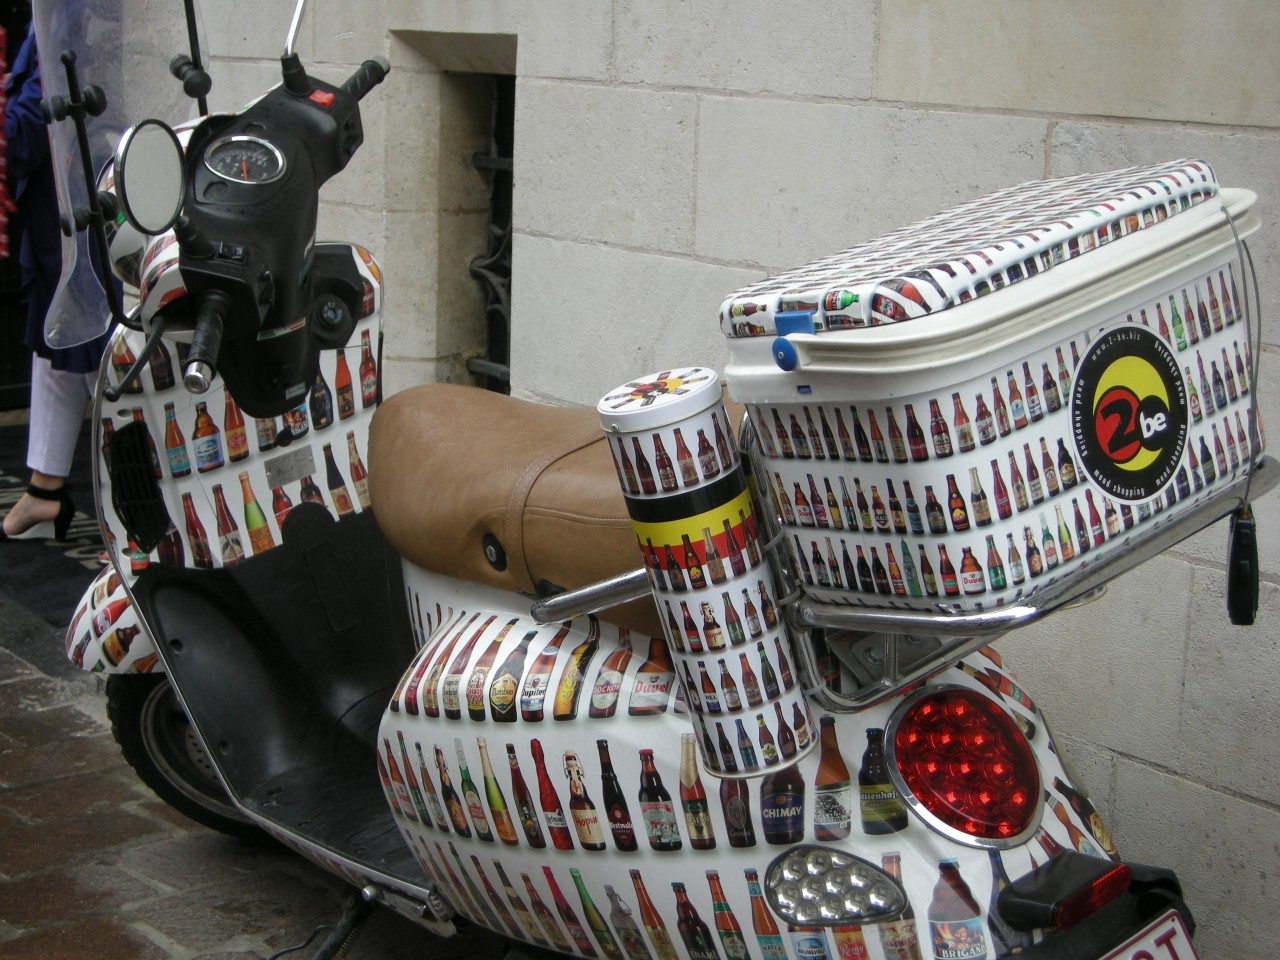 Belgian Beer bike